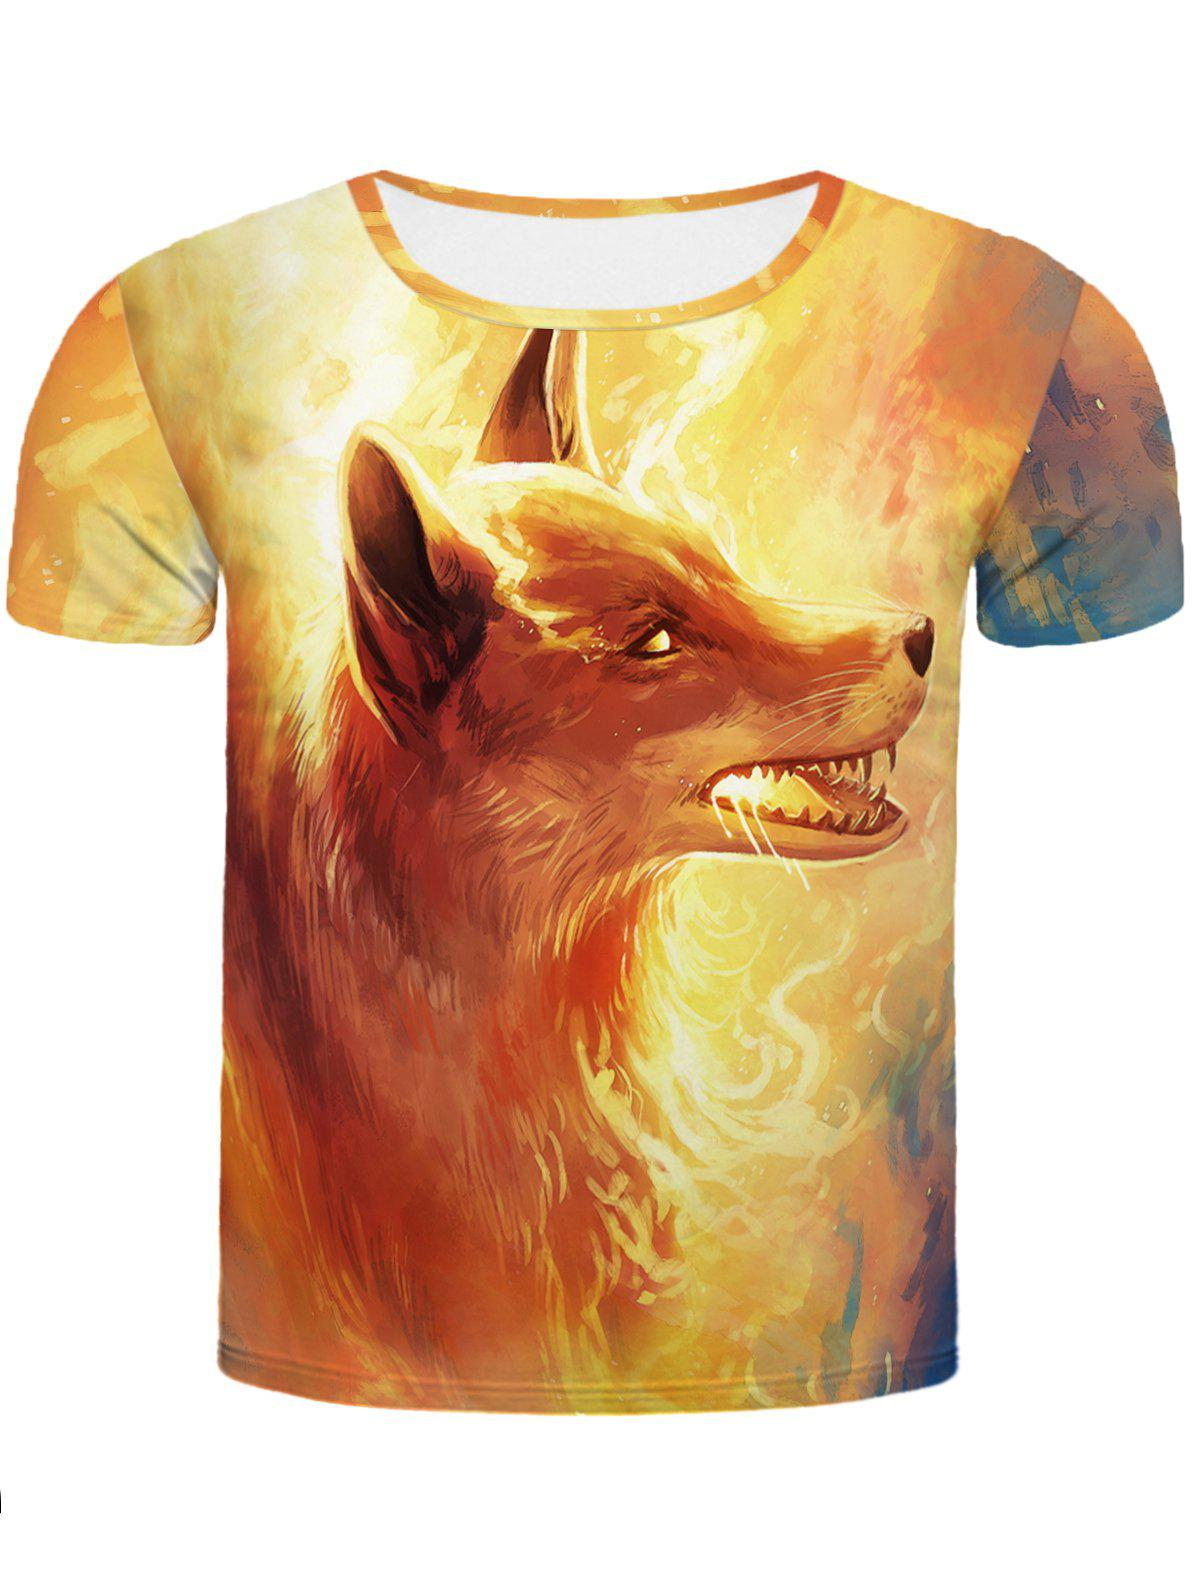 Cool Fire Fox 3D Printed Slimming Men's Round Neck Short Sleeves T-Shirt - COLORMIX 2XL